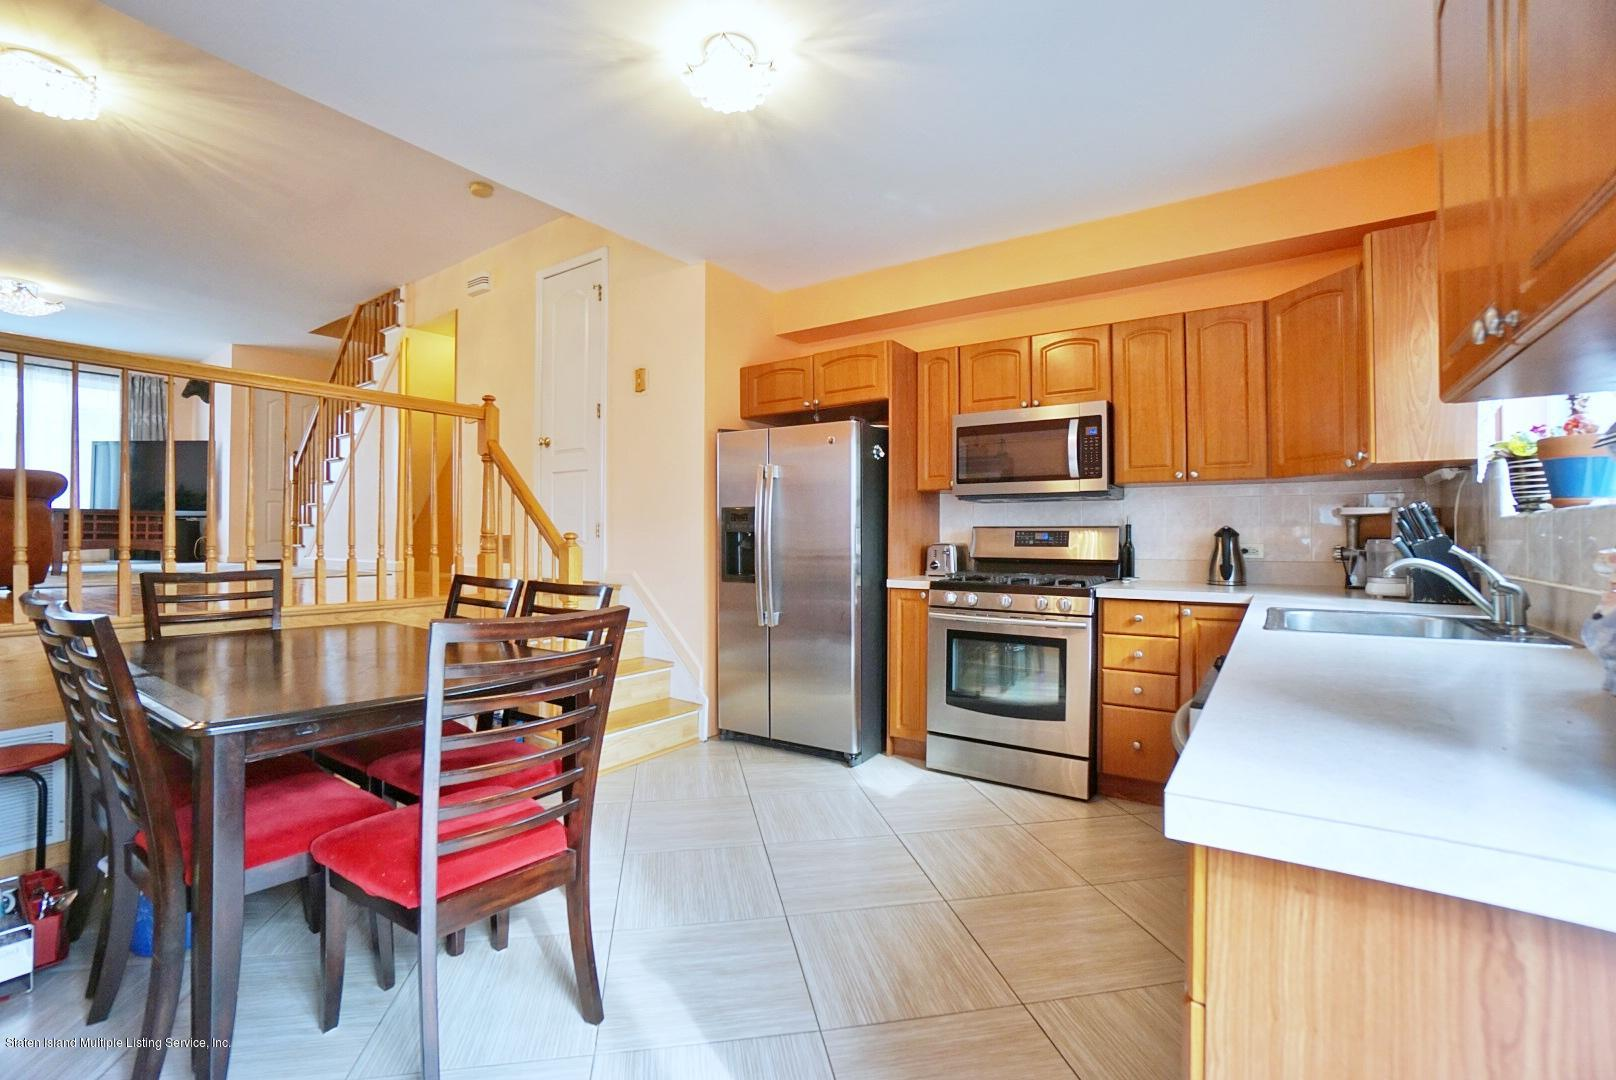 Single Family - Attached 30 Cranberry Court  Staten Island, NY 10309, MLS-1135421-10